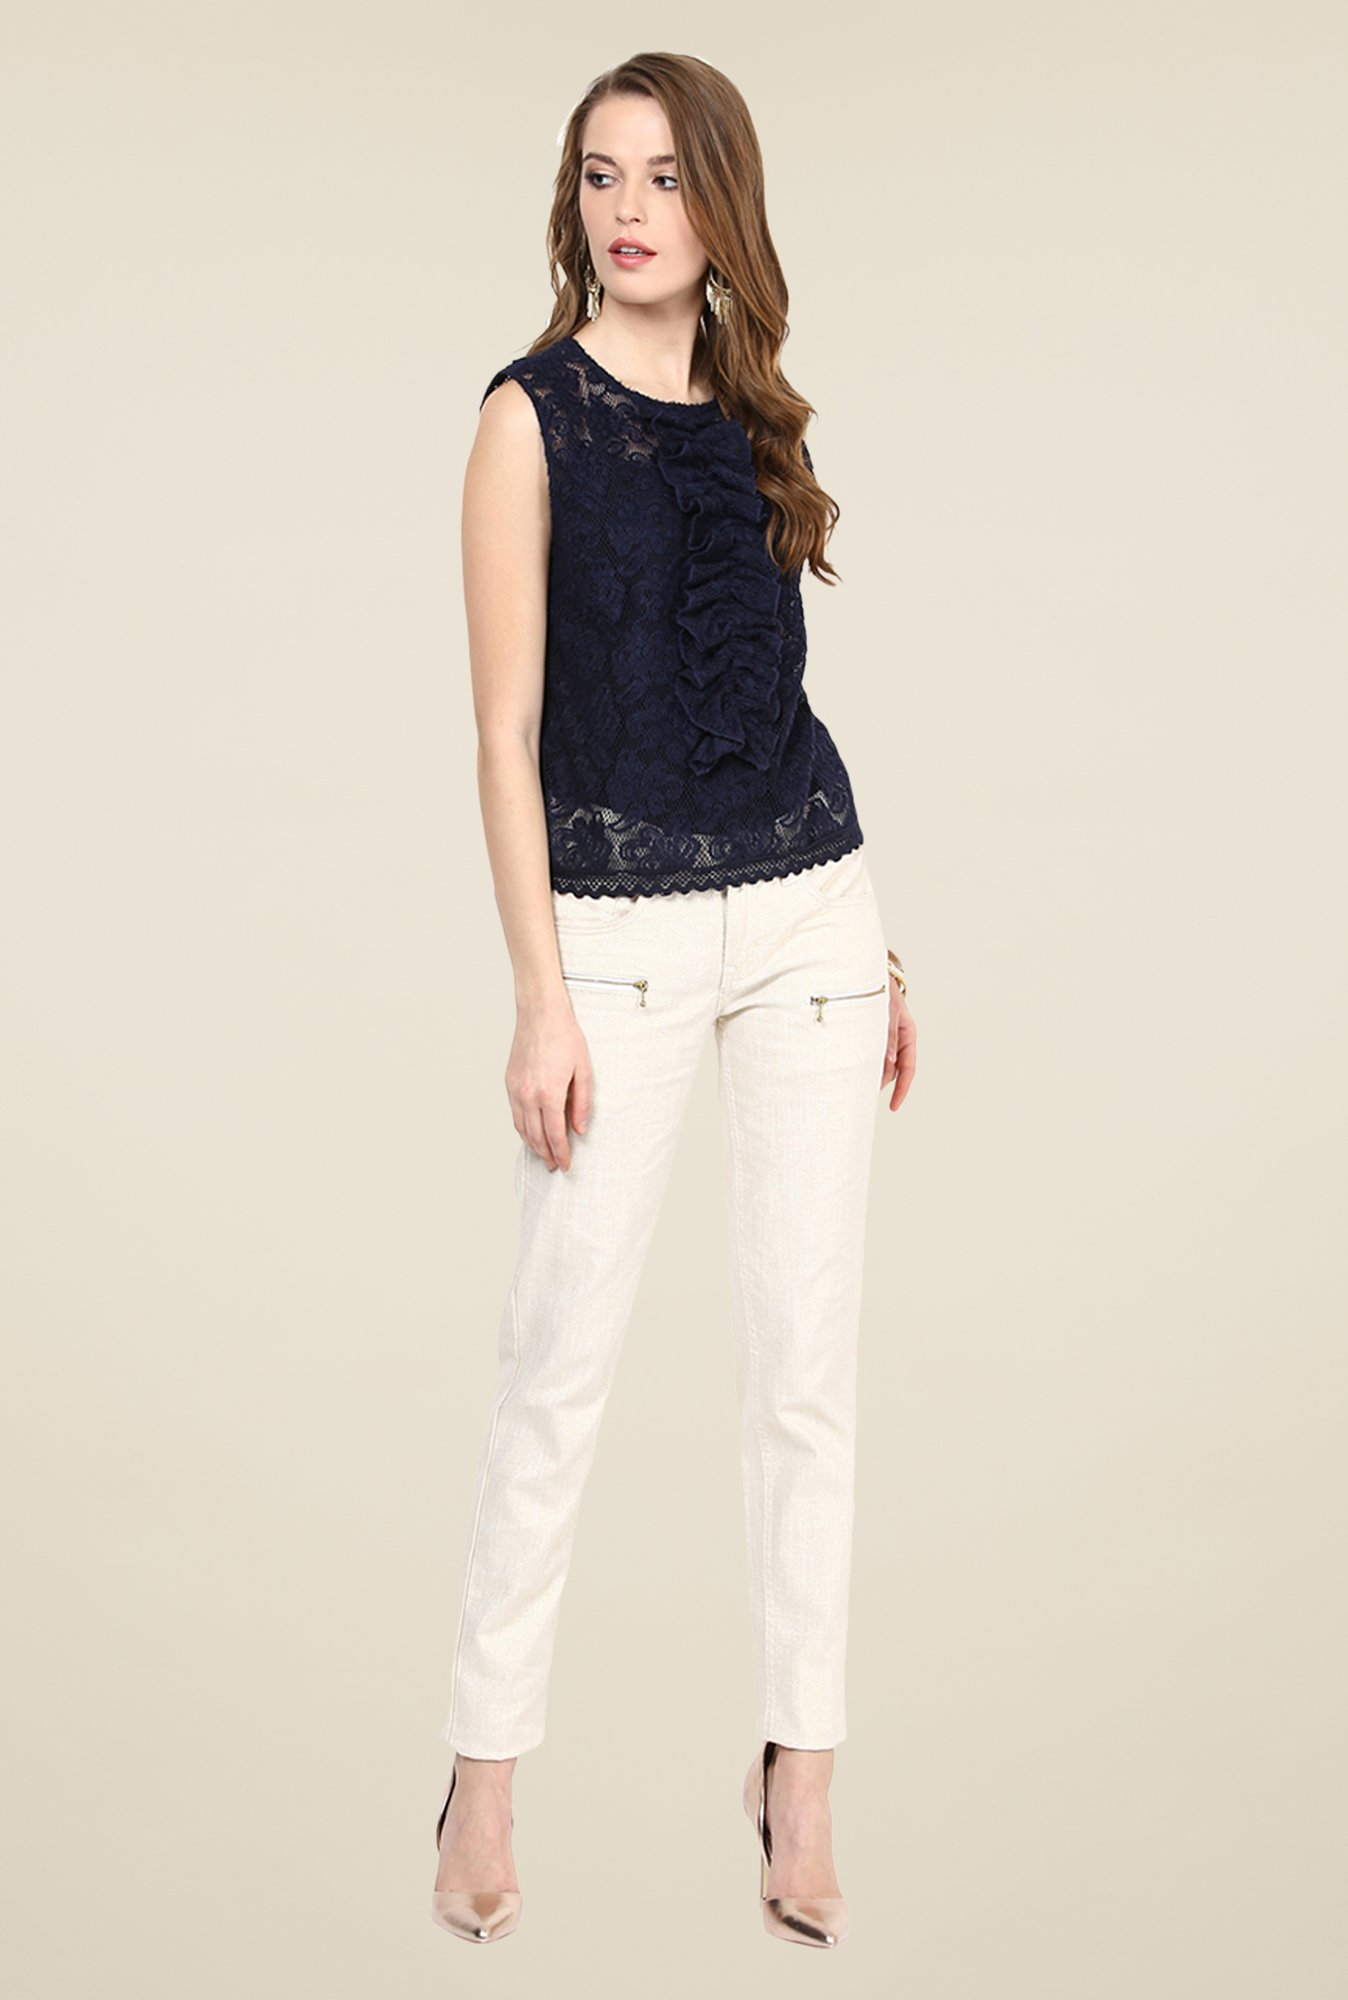 Yepme Jessica Blue Party Top